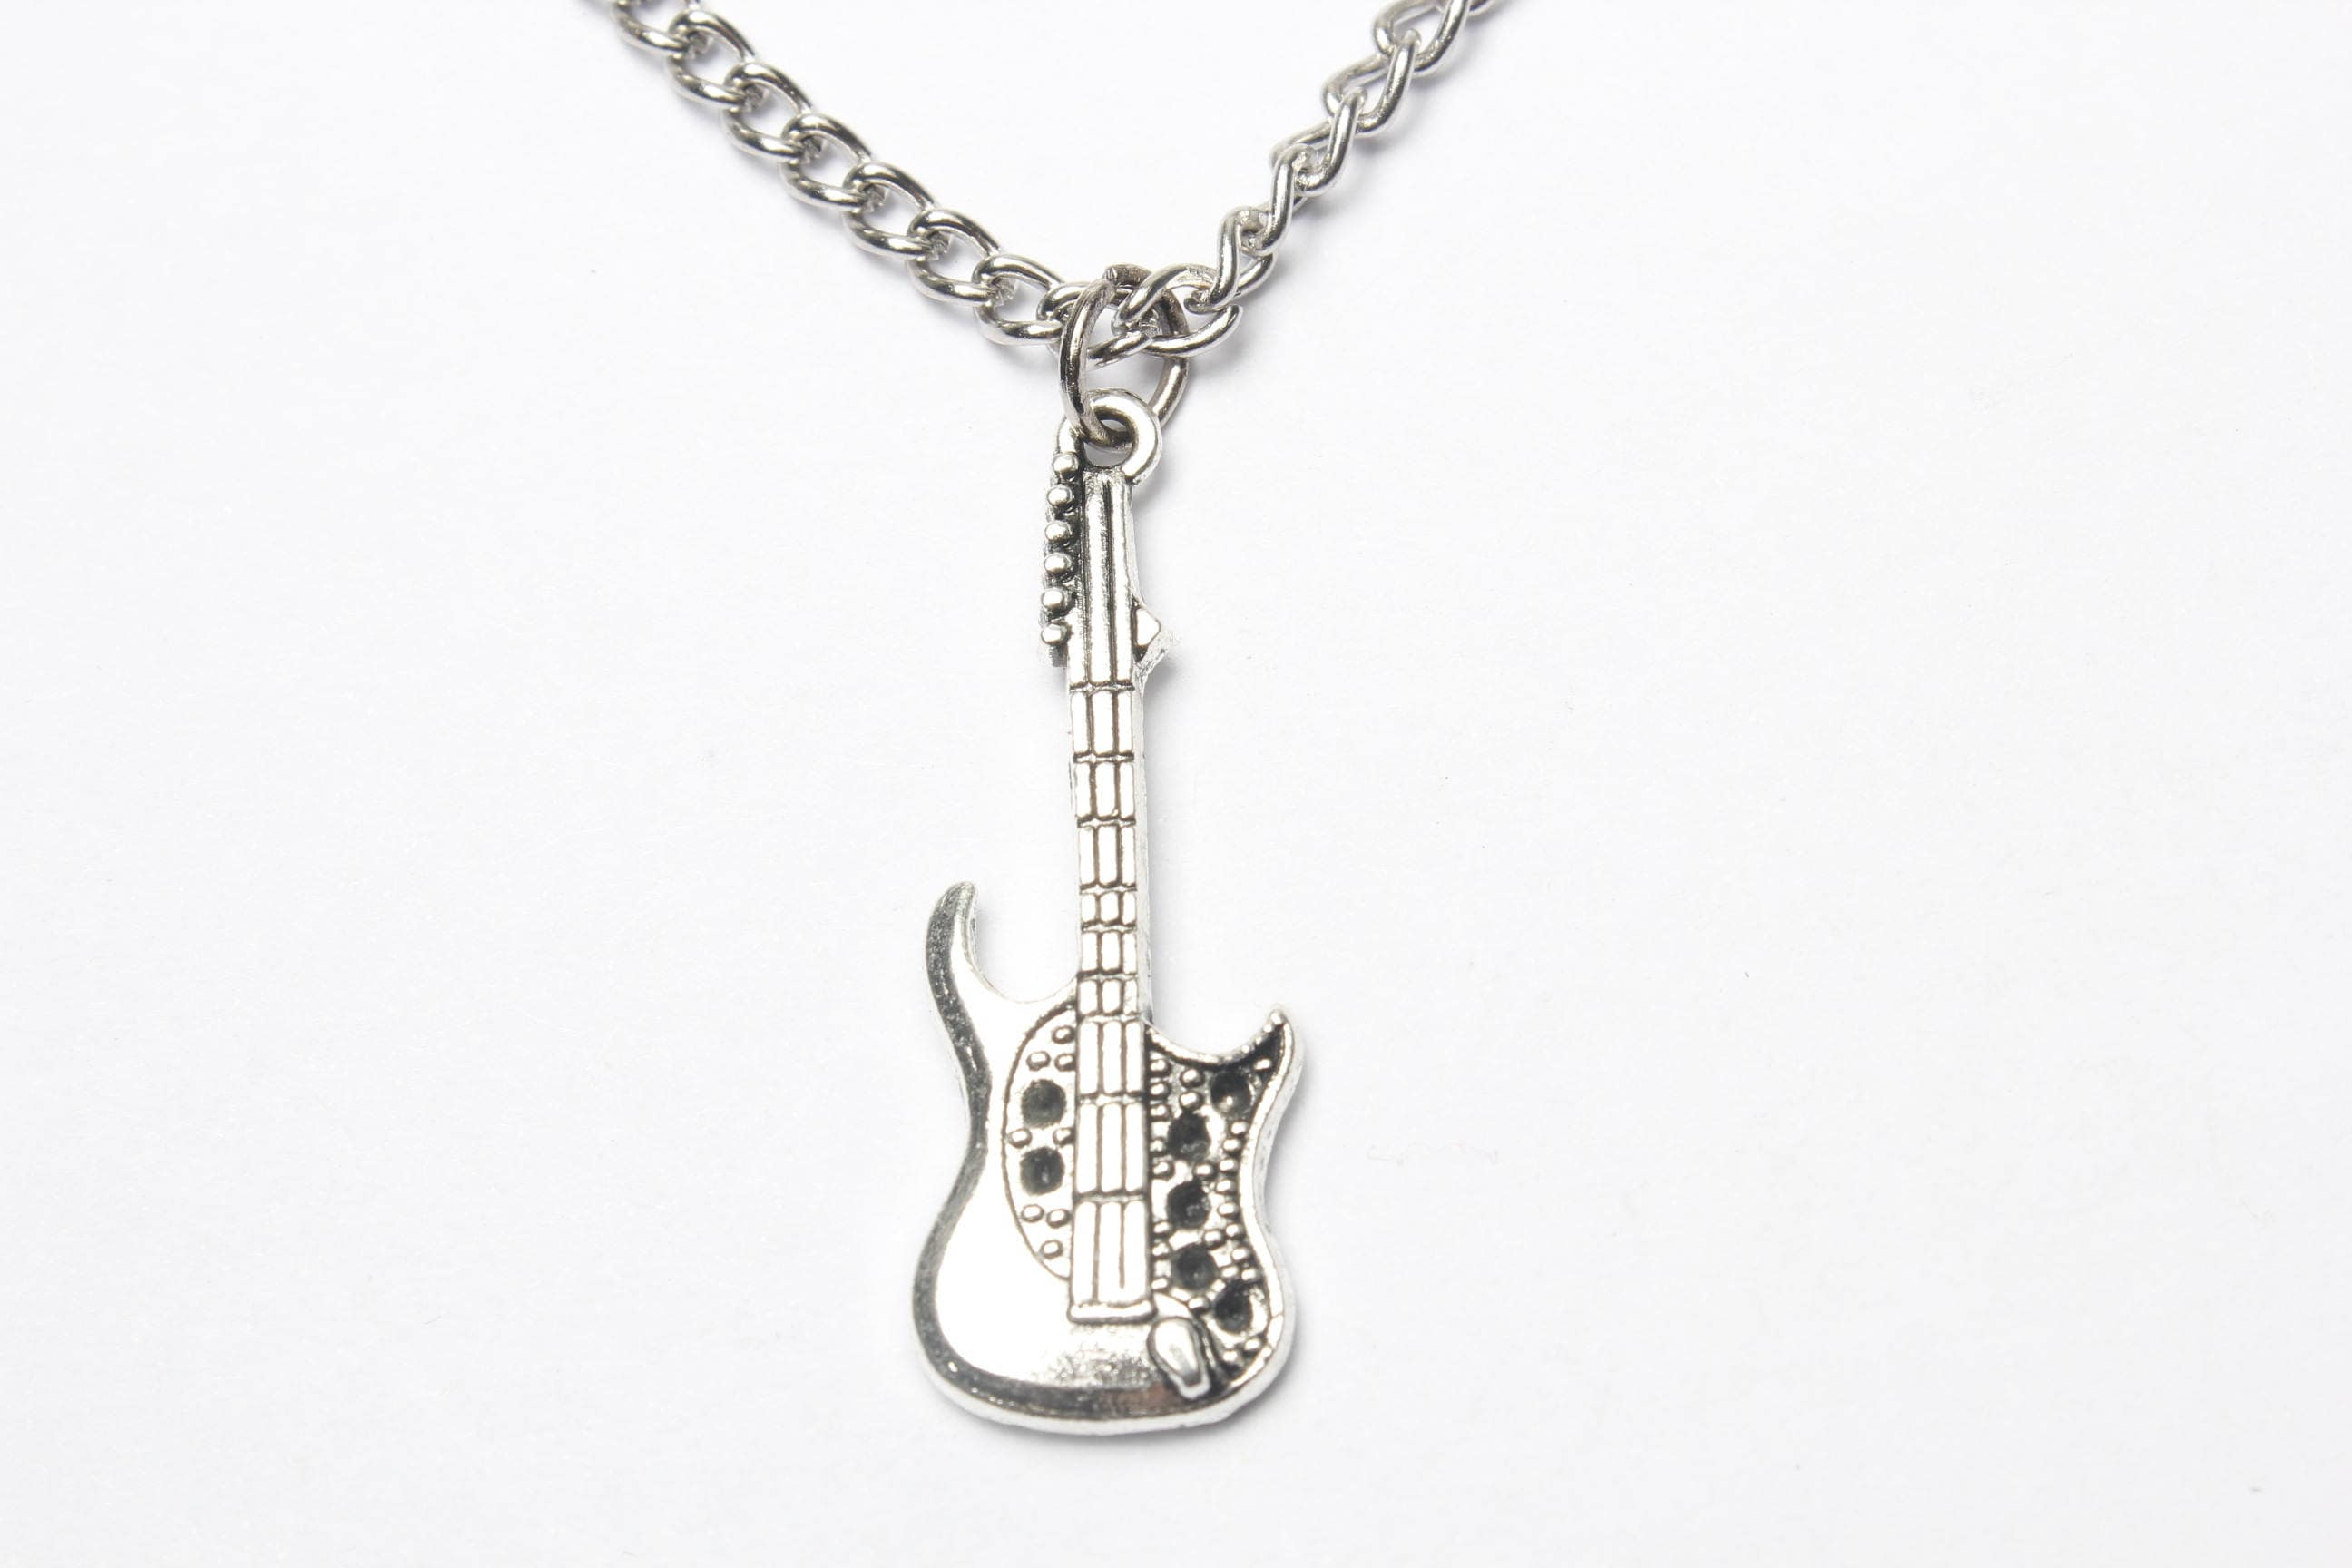 necklaces pinterest classical pin necklace guitar